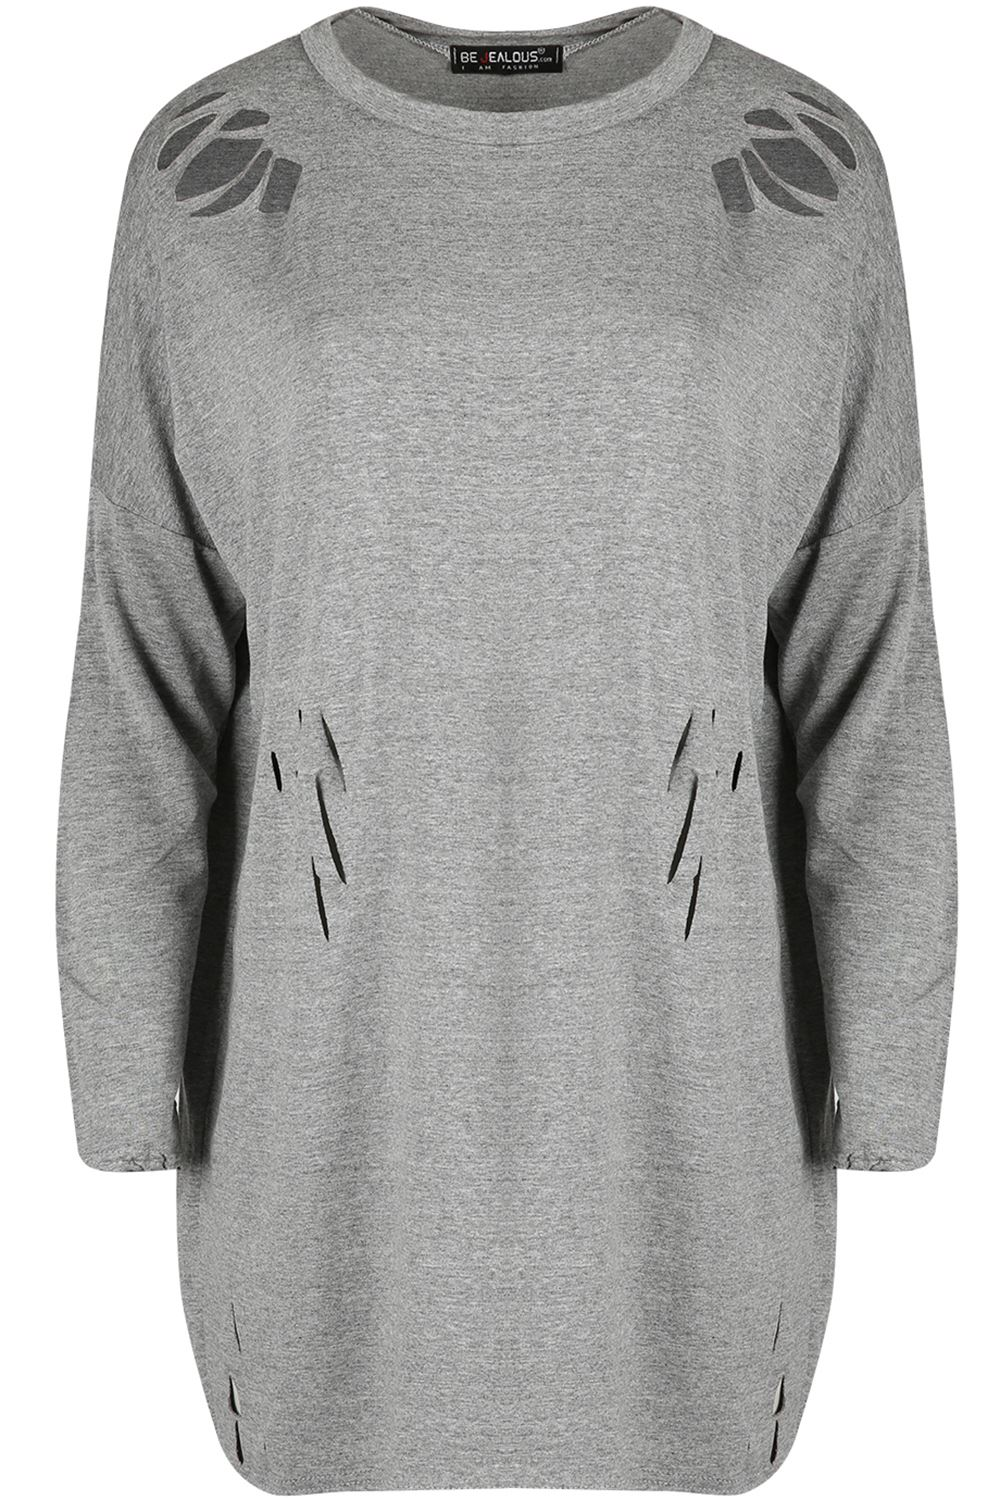 Womens Ladies Knit Destroyed Distressed Rip Baggy Oversized ...